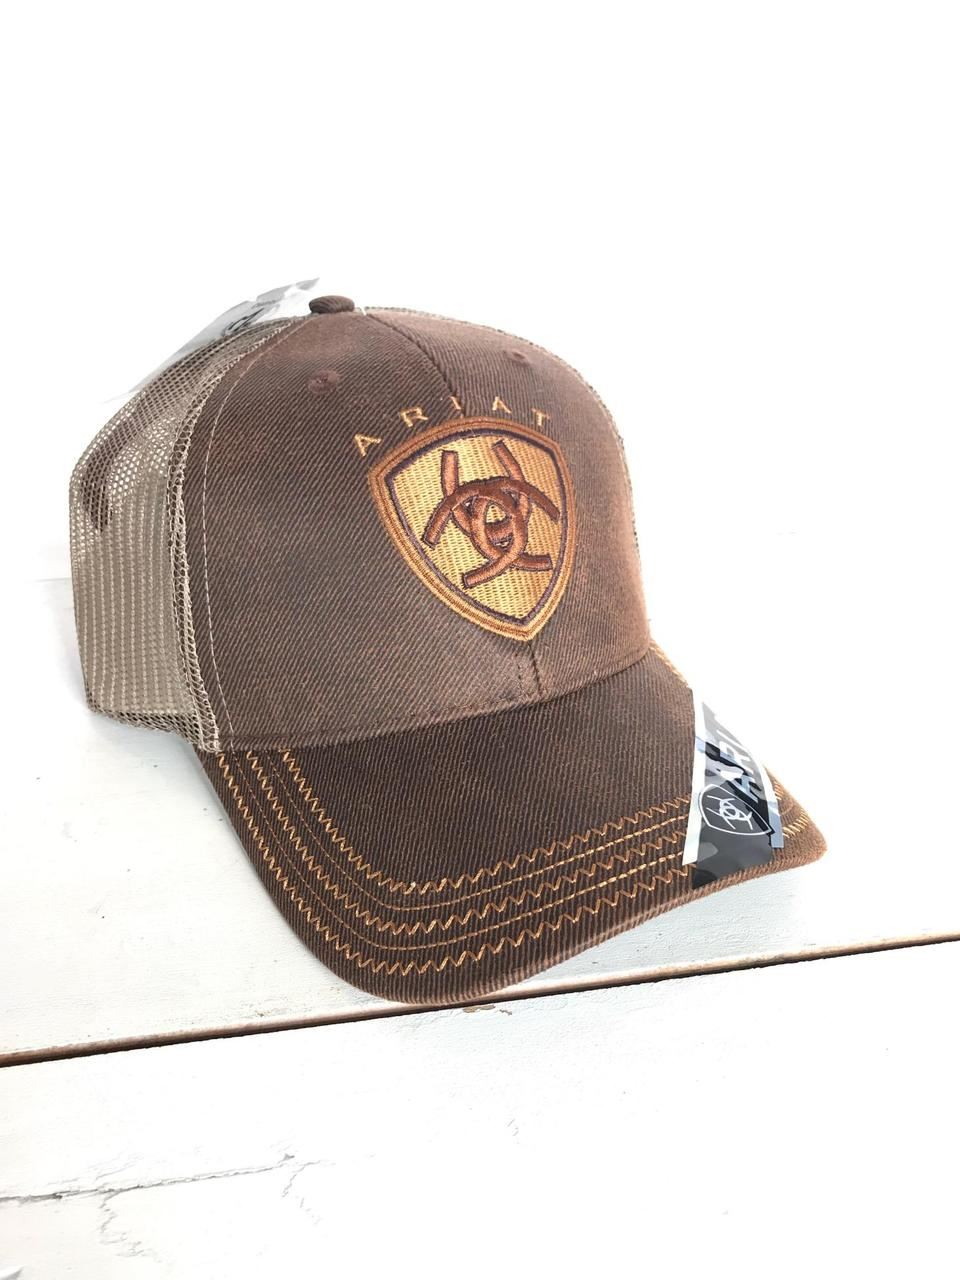 09df1892a027a2 Ariat Velcro Mesh Hat Brown Oilskin - The Boot Life